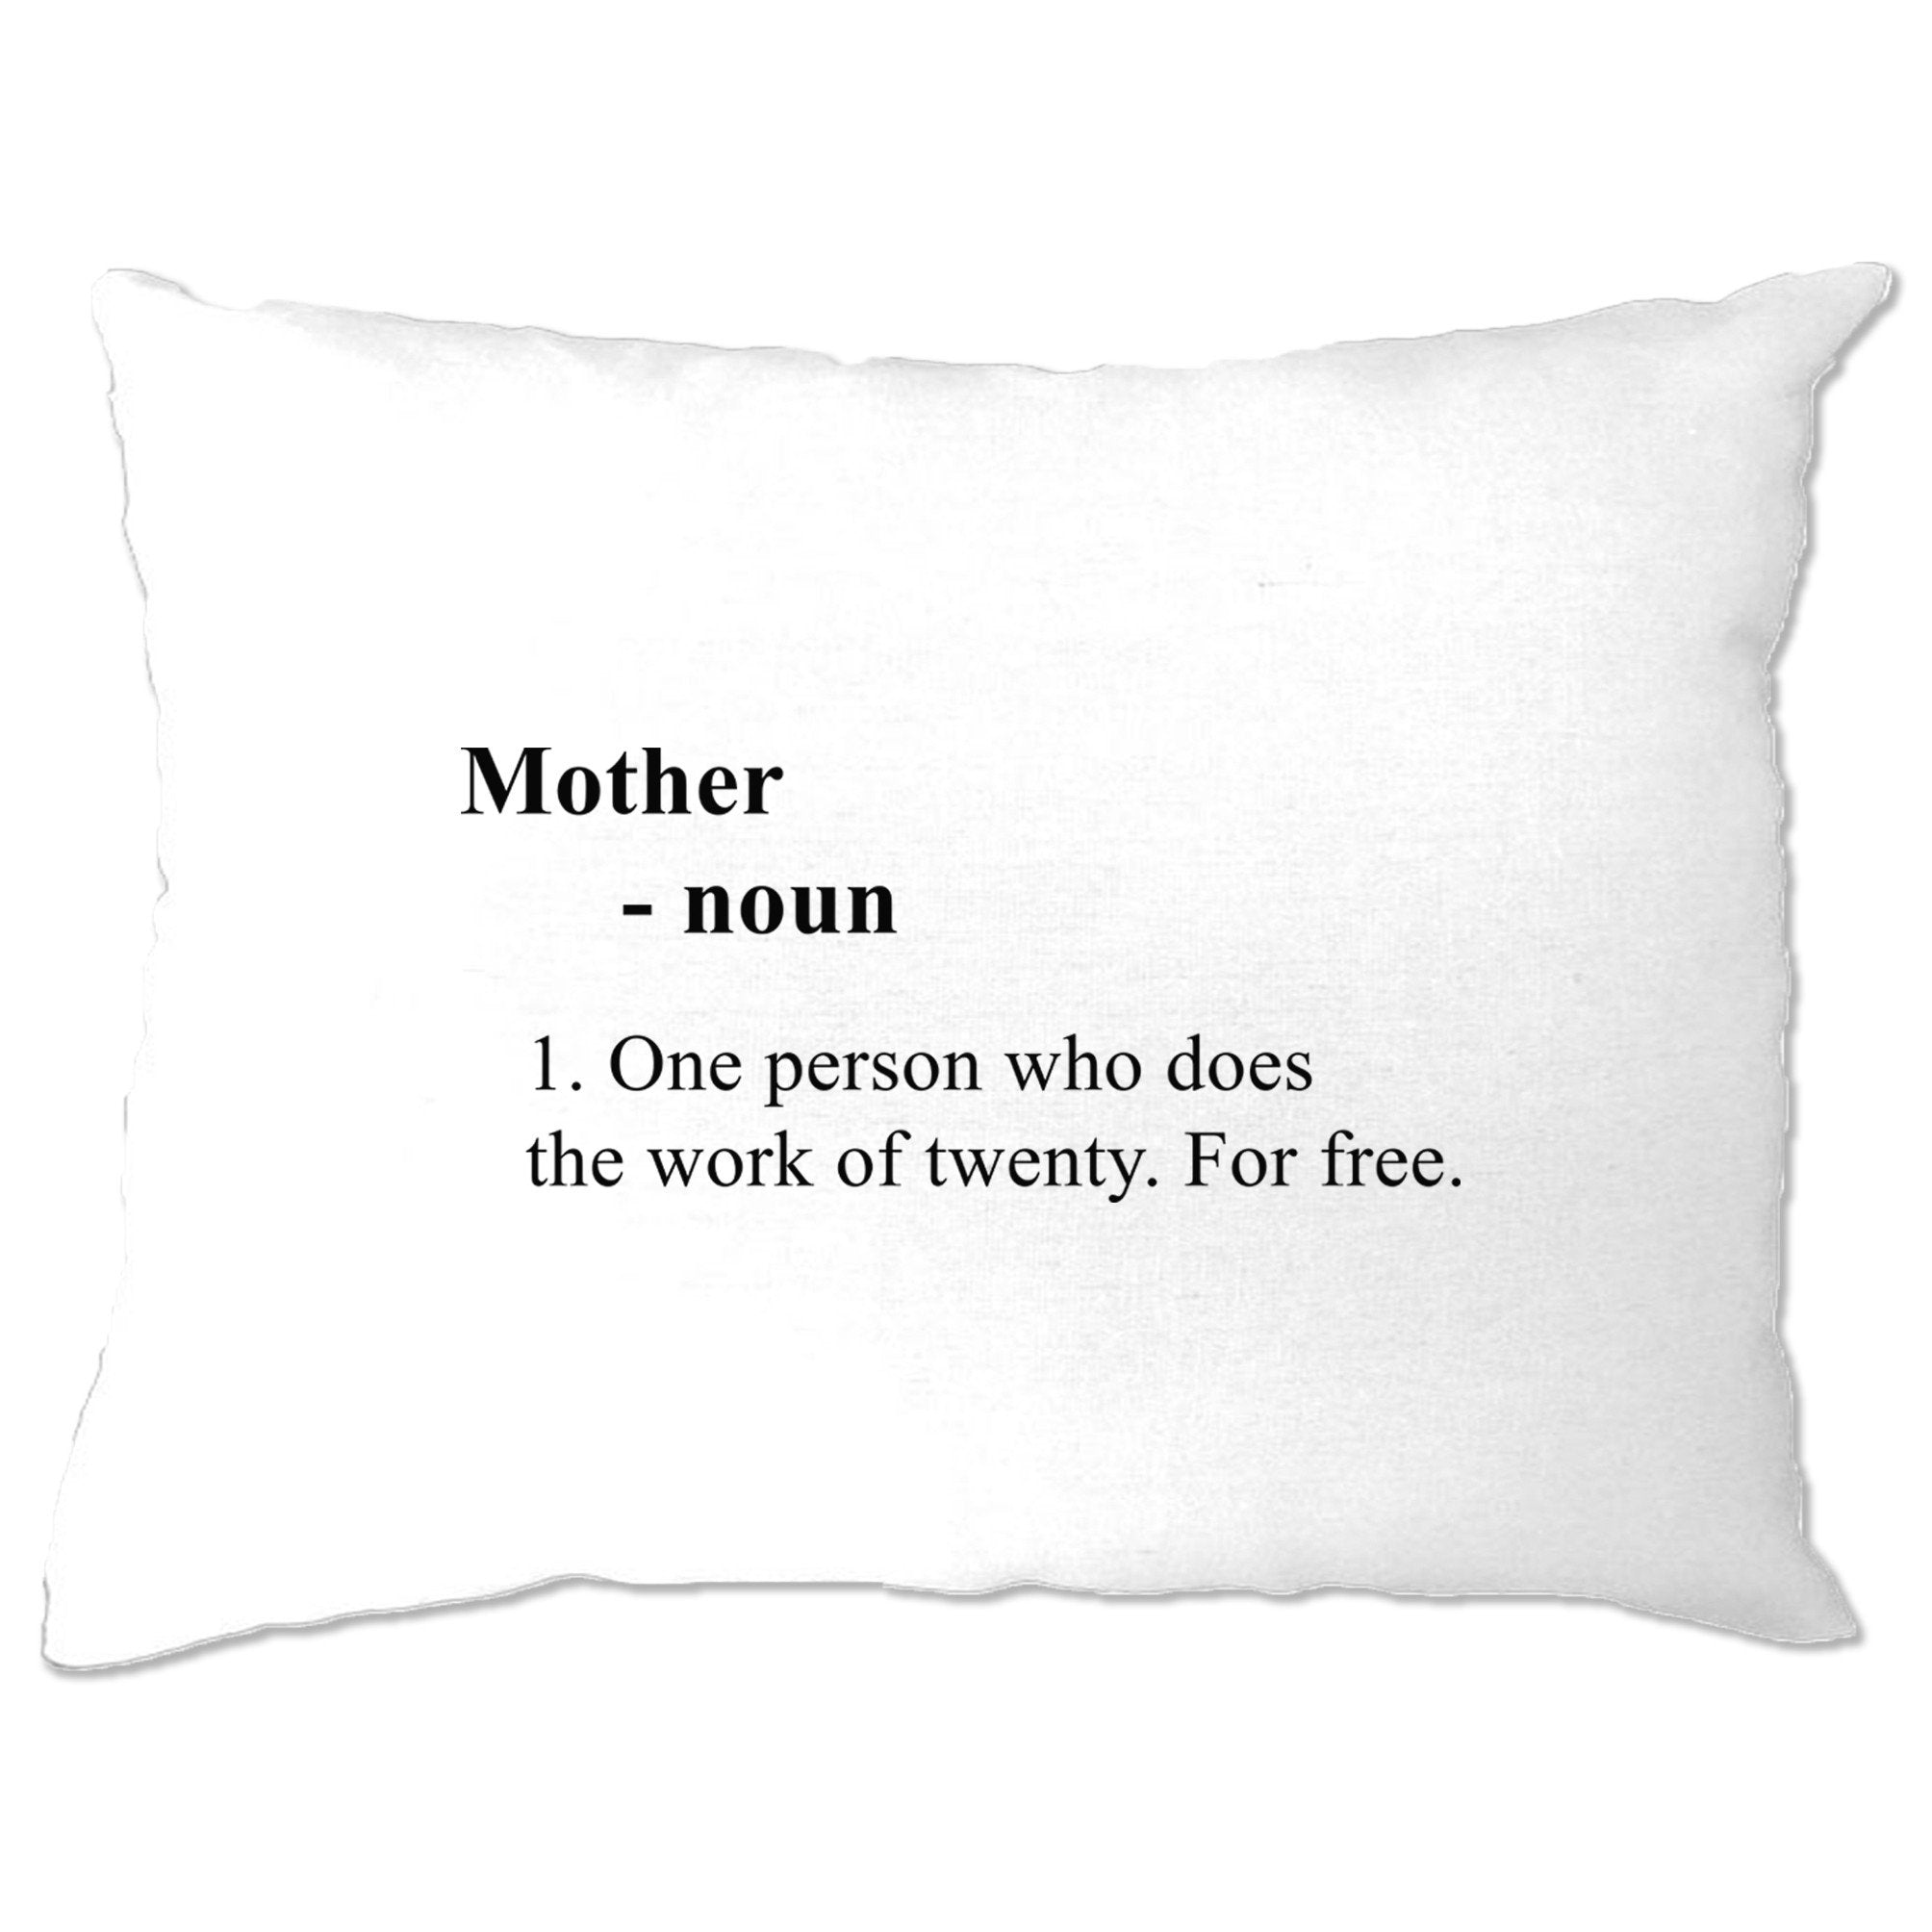 Mother's Day Pillow Case Novelty Dictionary Definition